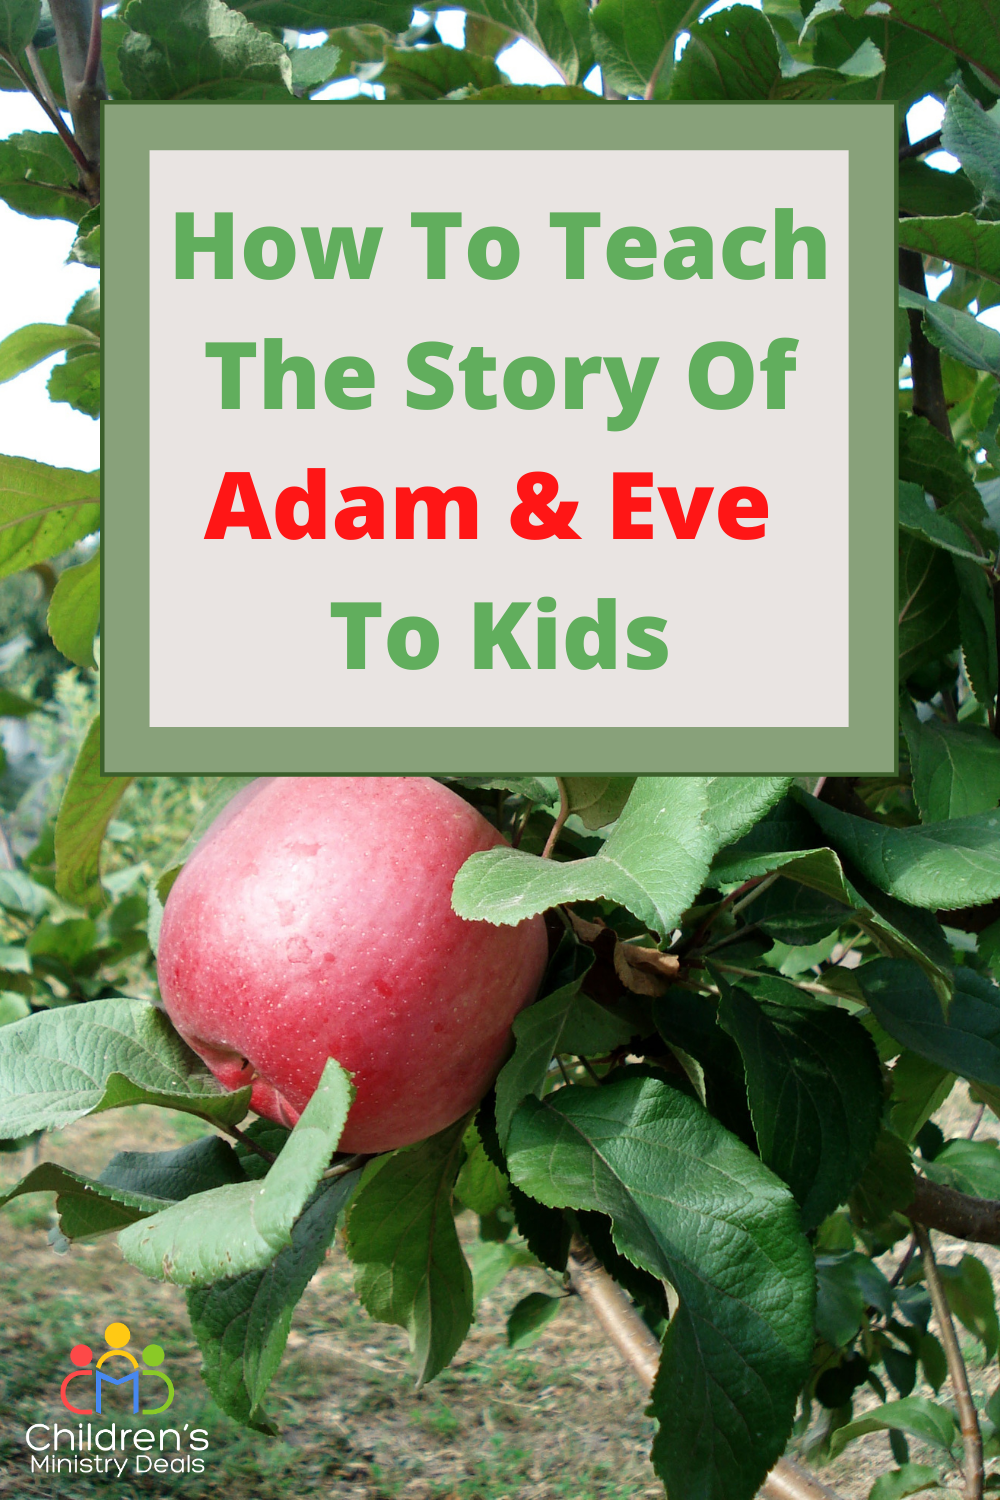 How to Teach the Story of Adam & Eve to Kids